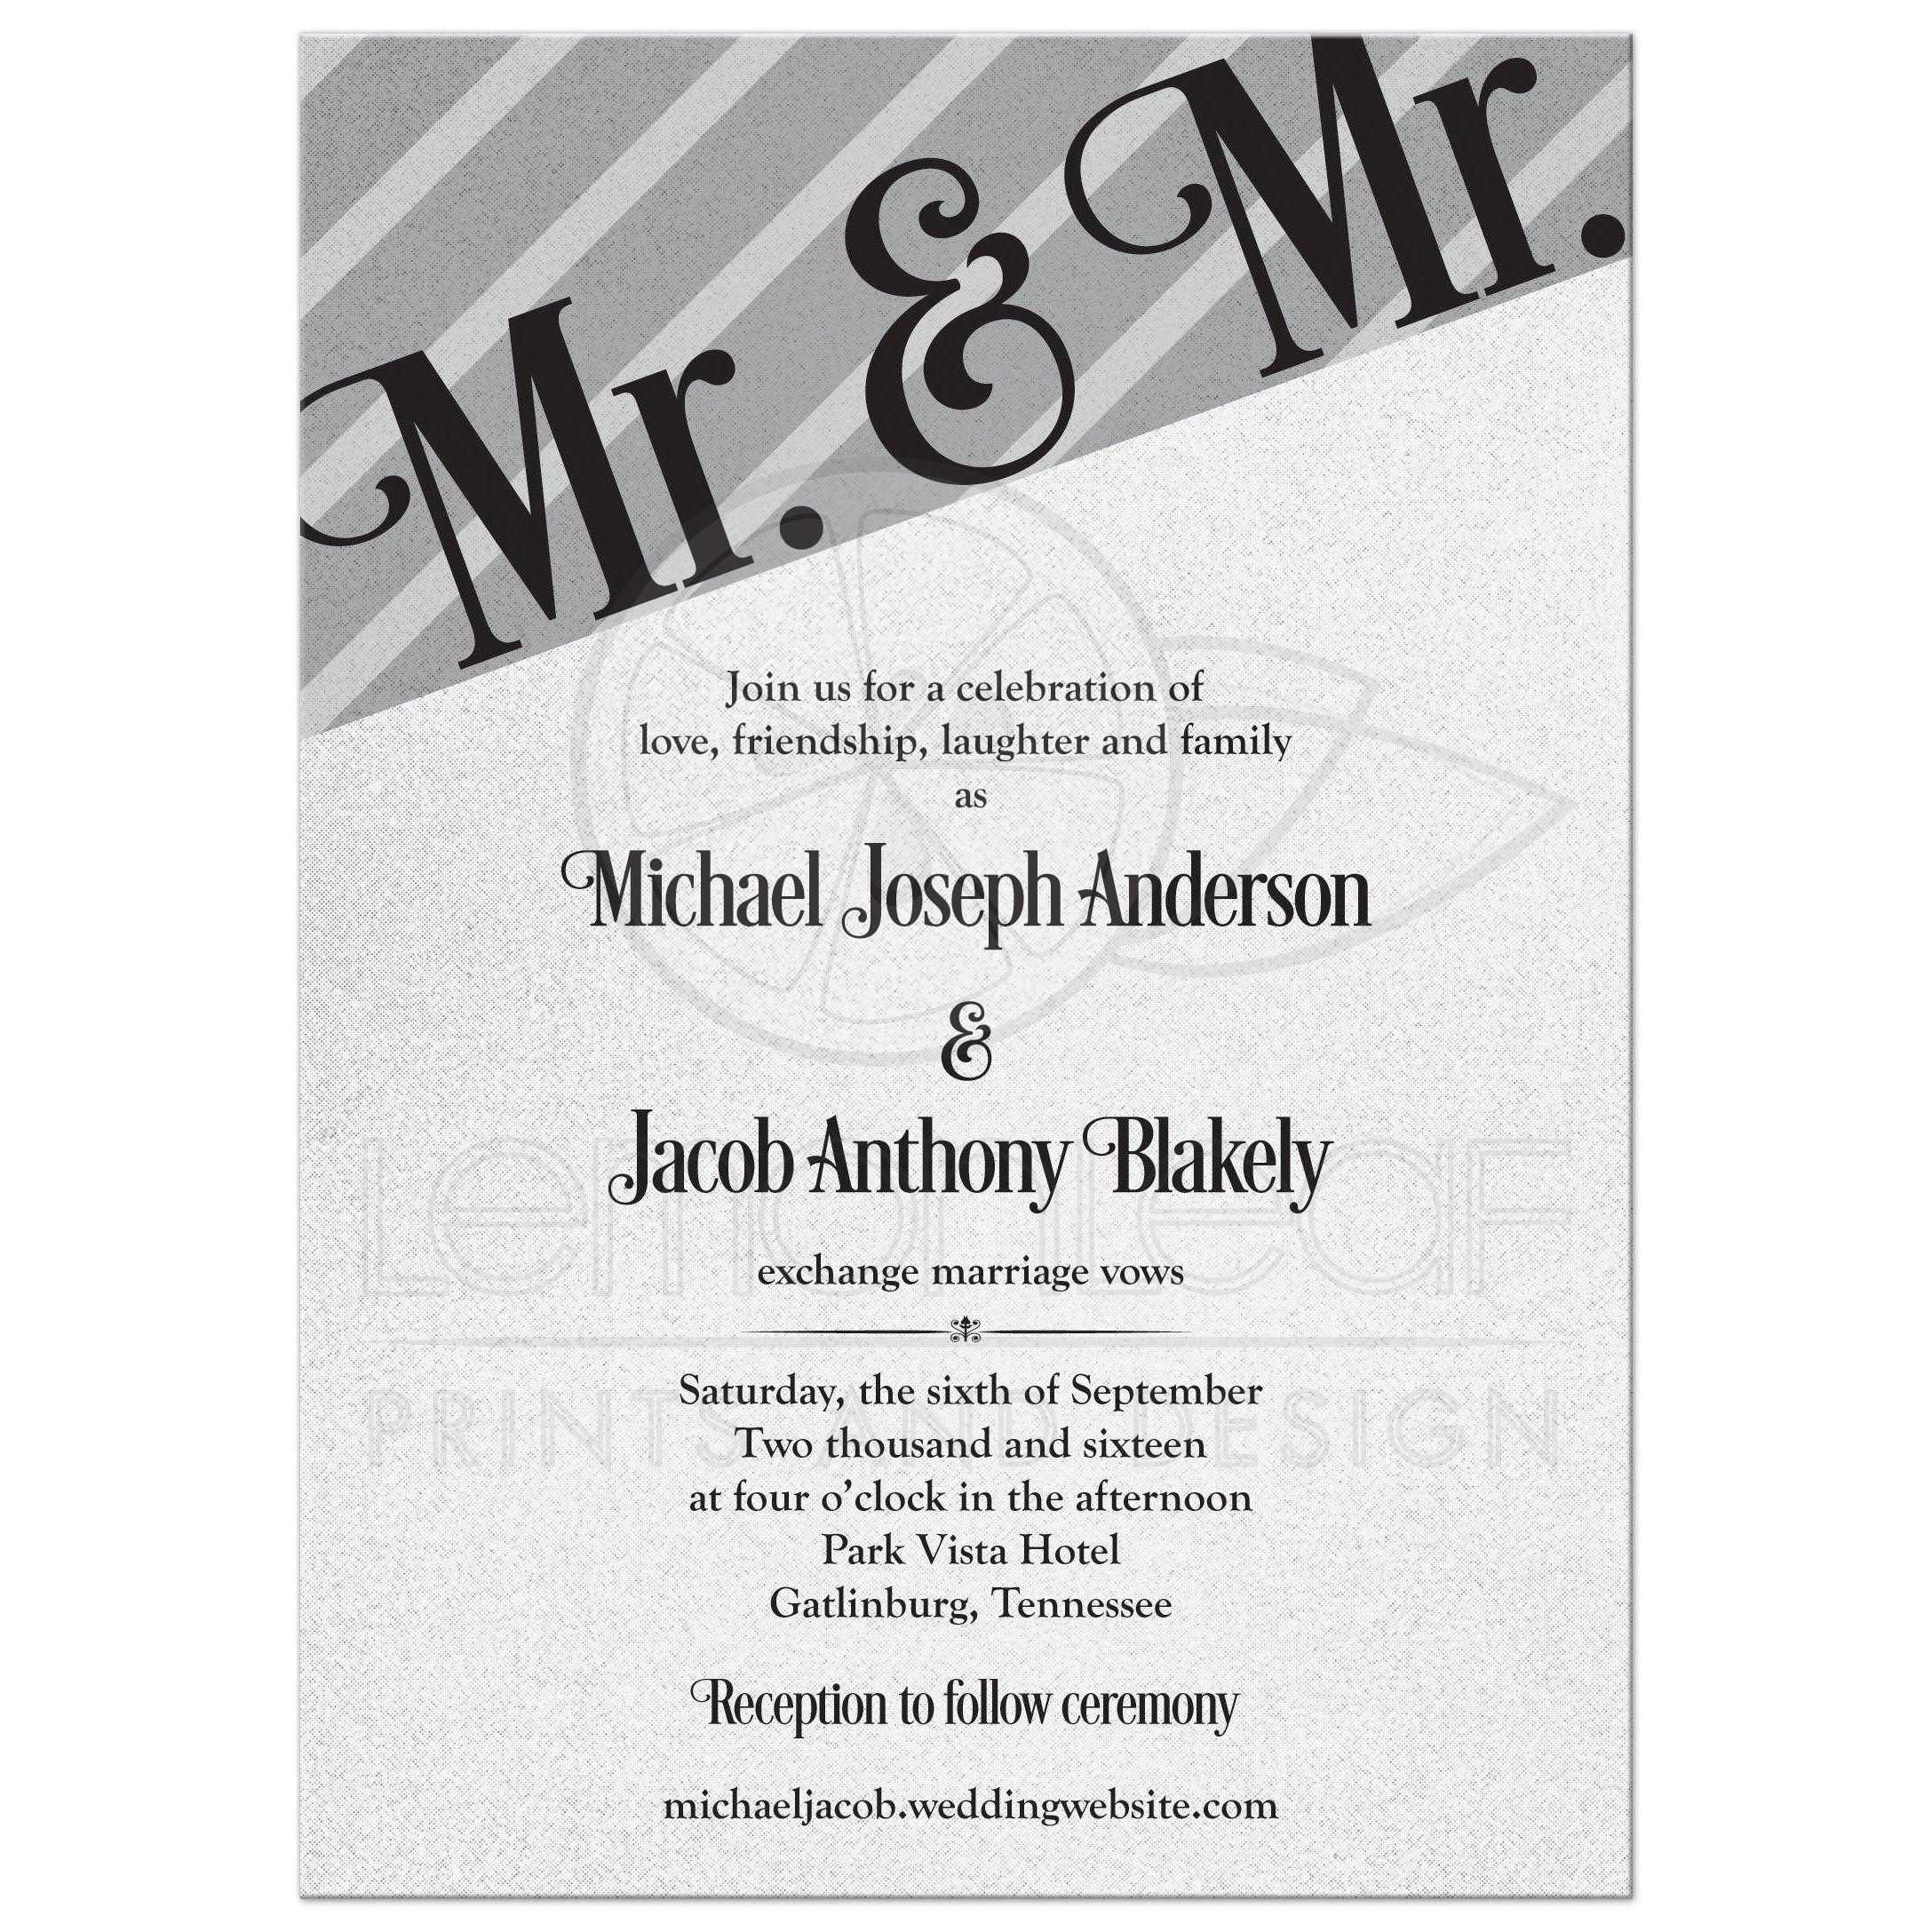 The best wedding invitations for you: Unique gay wedding invitations